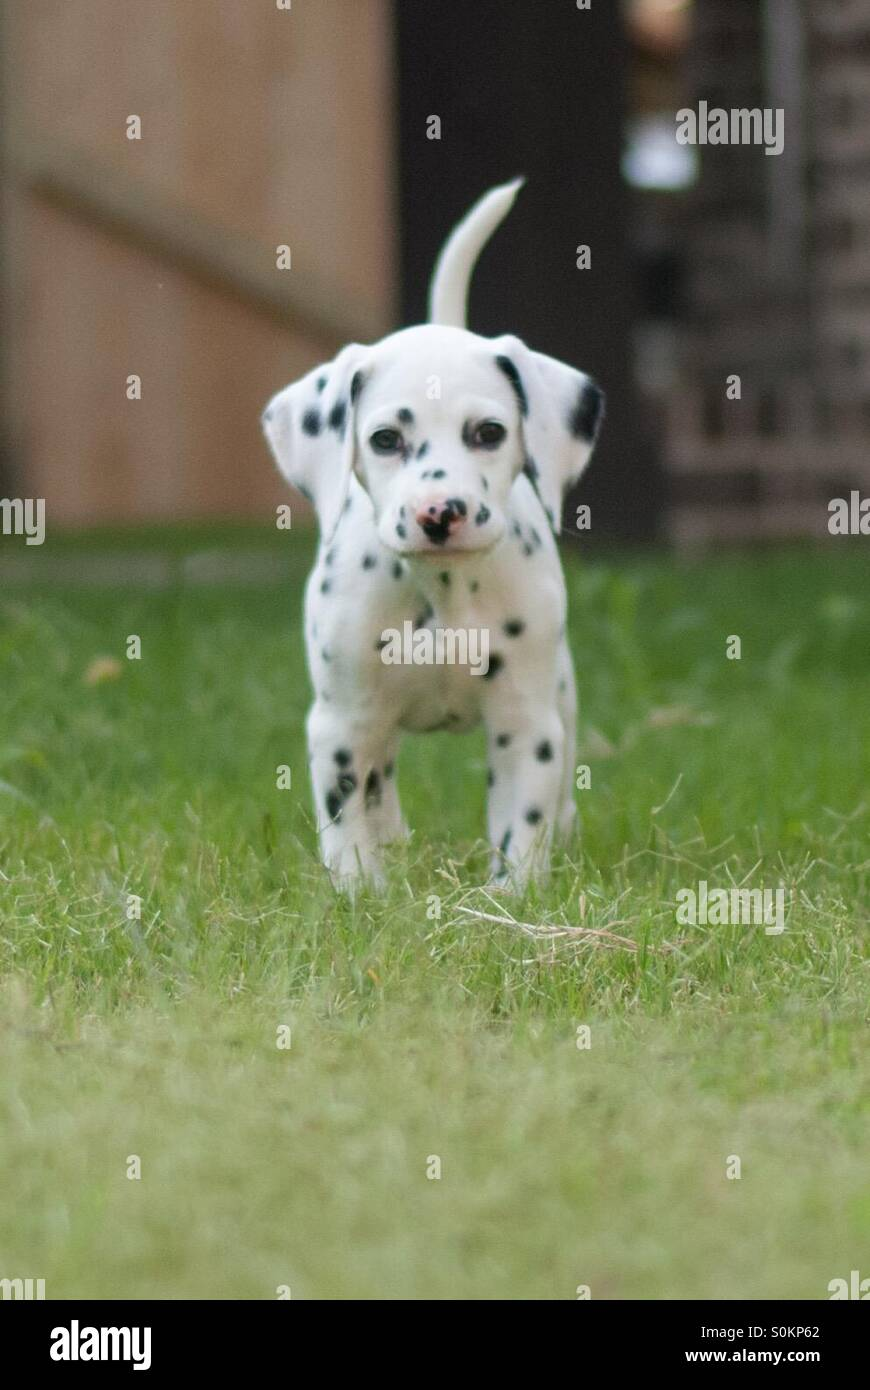 8 week Dalmatian puppy. Black and white spots. Dog. - Stock Image